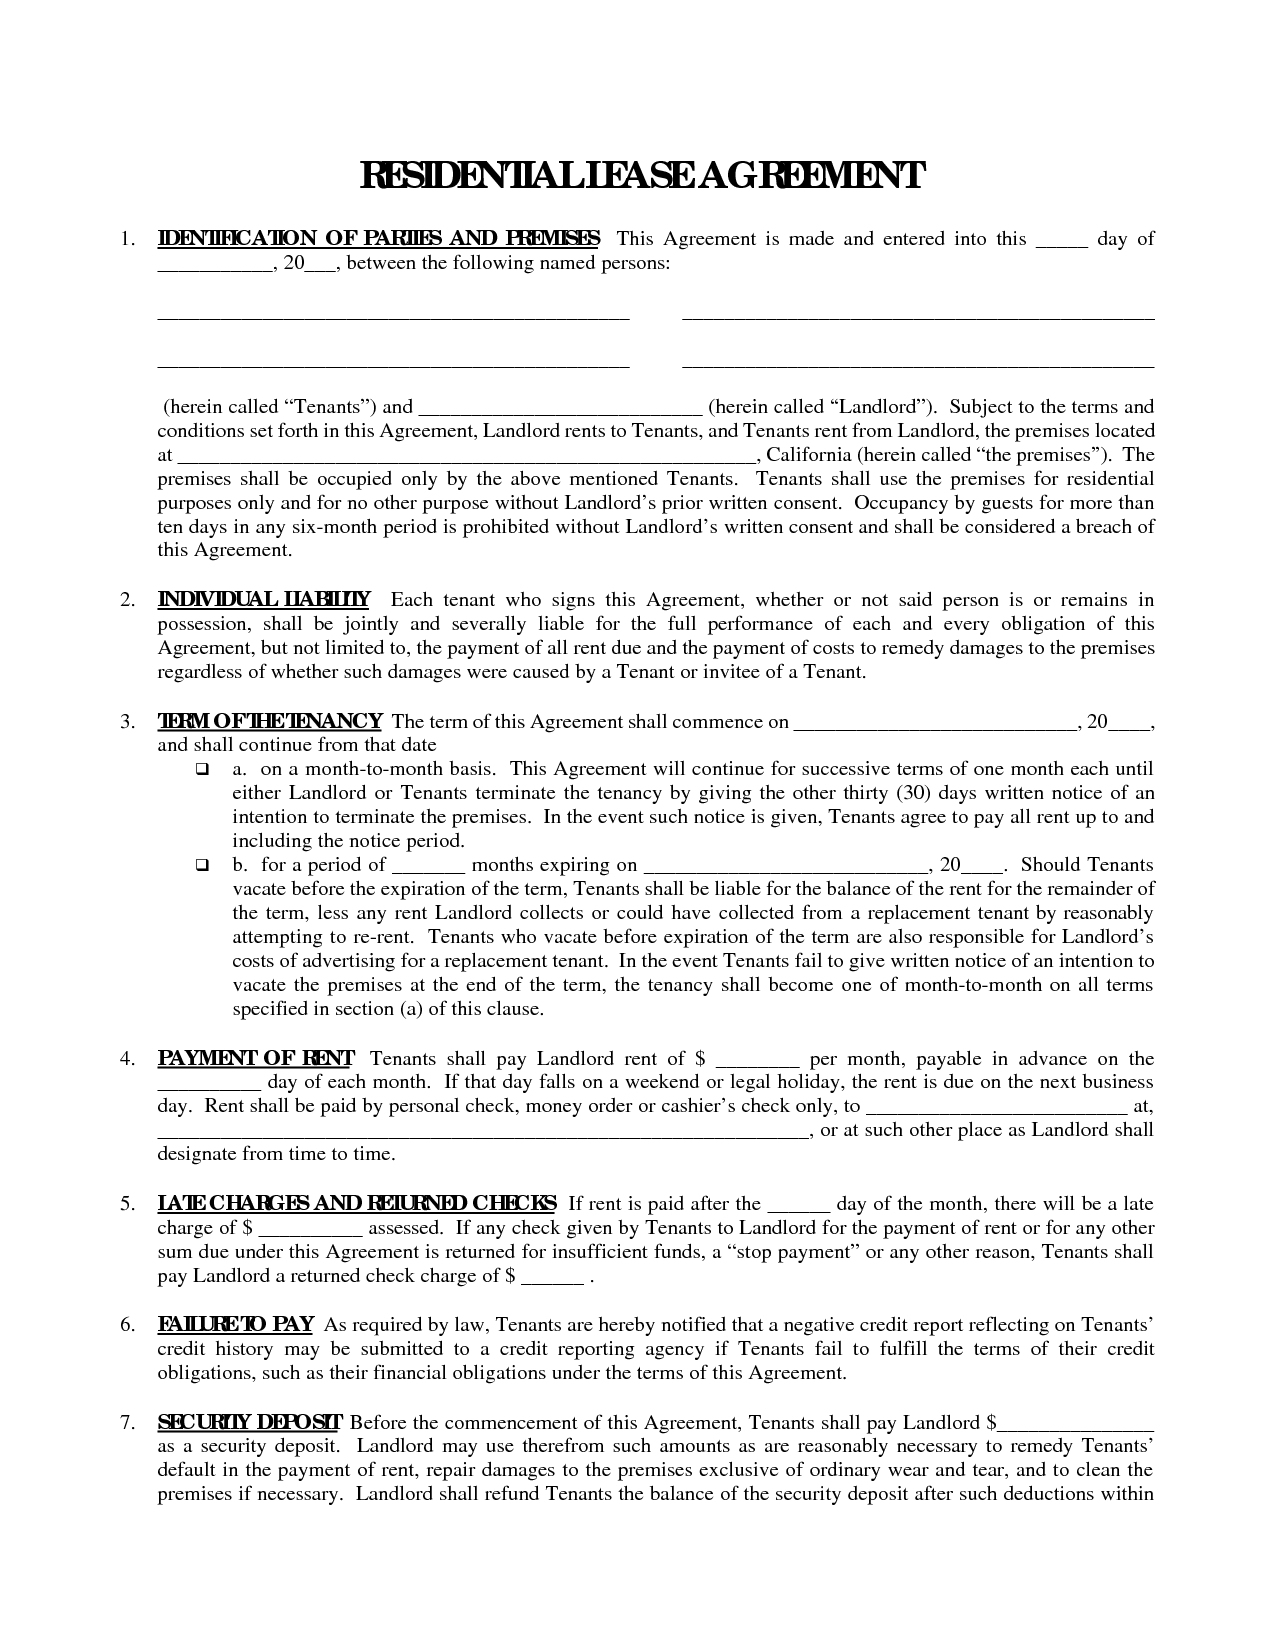 Printable Residential Free House Lease Agreement | Residential Lease - Free Printable Lease Agreement